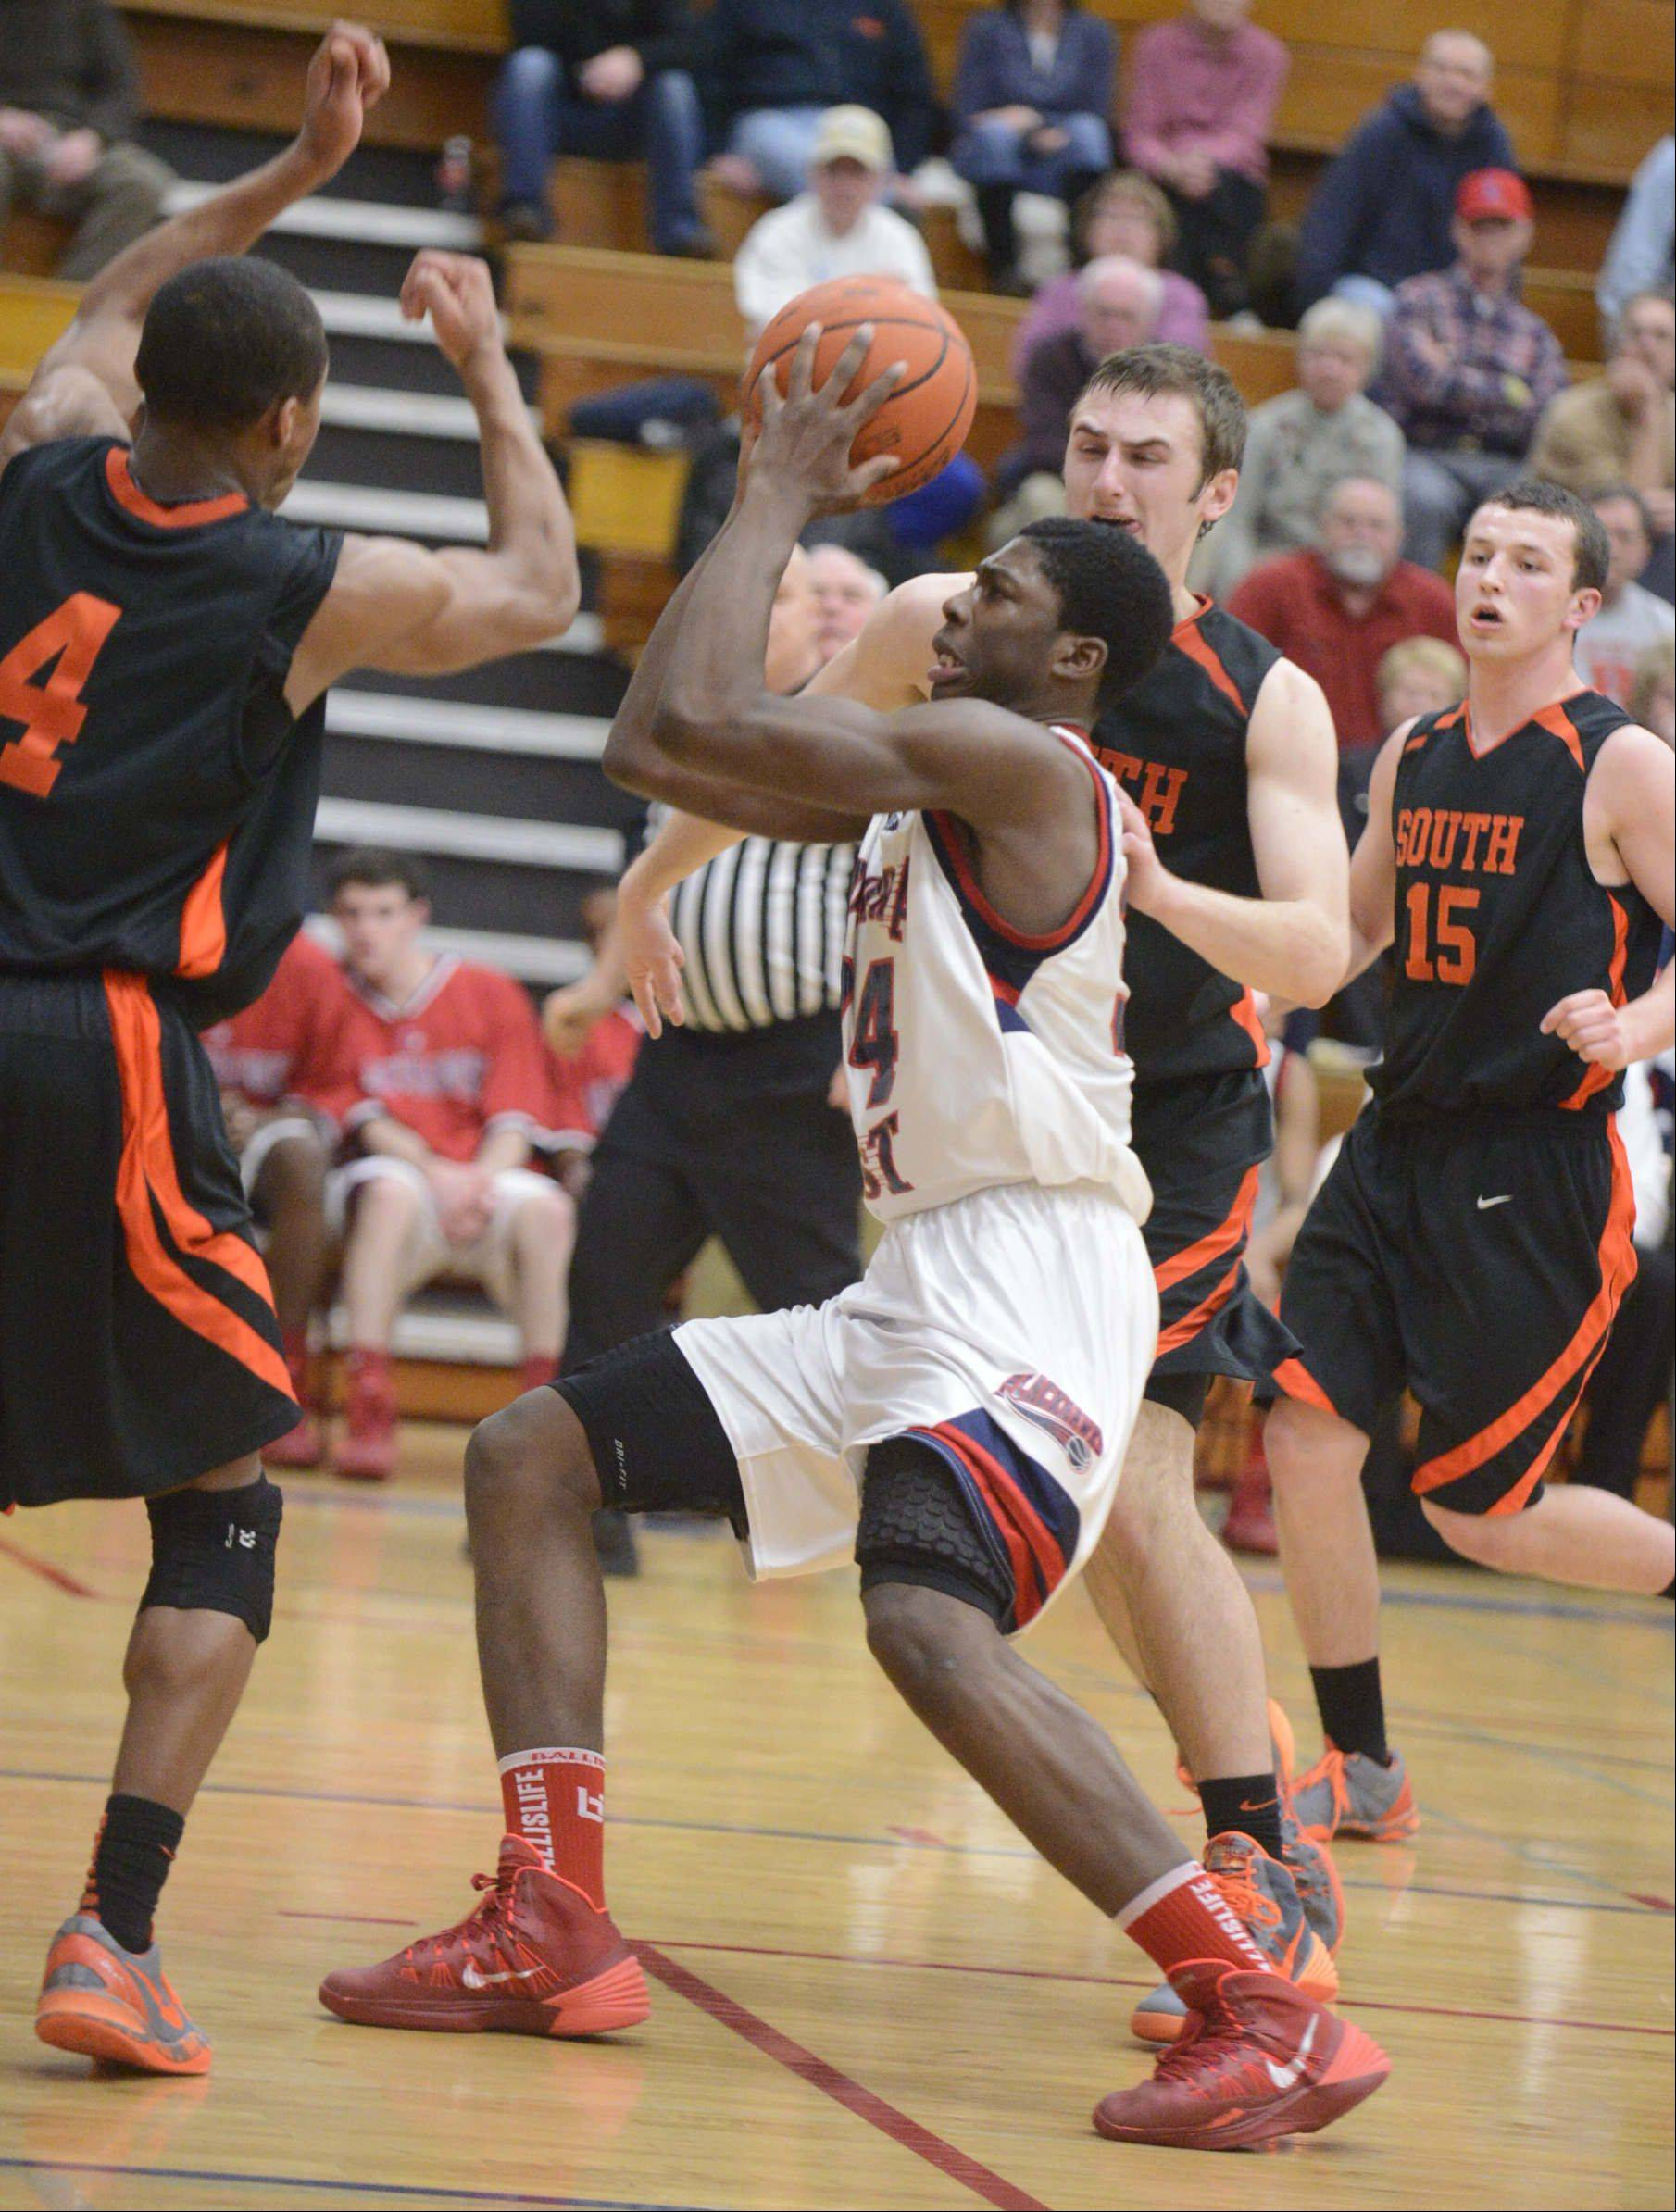 Images from the Wheaton Warrenville South at West Aurora boys basketball game Tuesday, February 4, 2014 in Aurora.